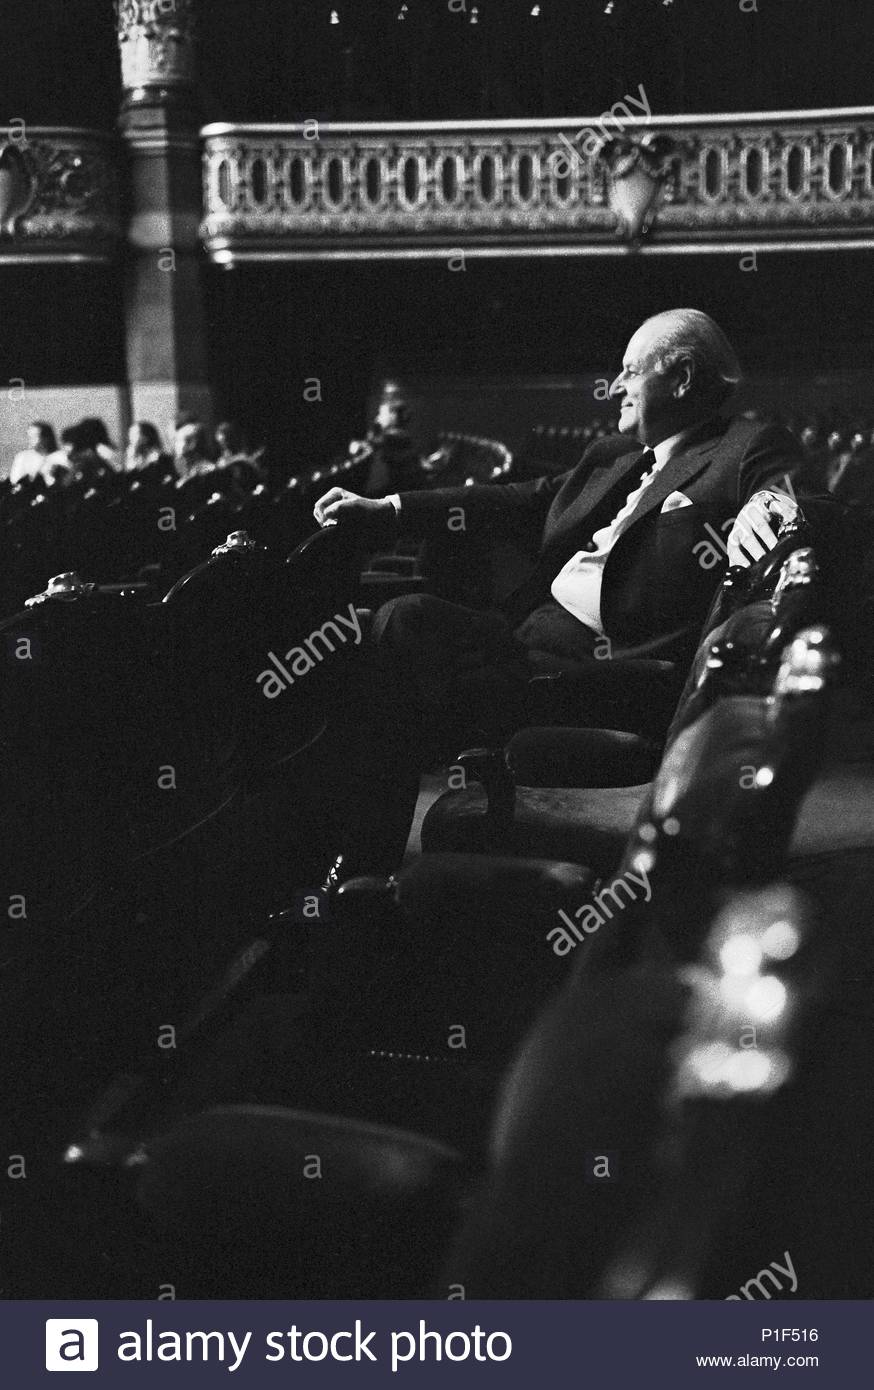 The Paris Opera in the Palais Garnier reopened in 1973 under its new director Rolf Liebermann. Liebermann watching a rehearsal of the Marriage of Figaro, opener of the new season. Paris Opera,1973. Author: Erich Lessing (b. 1923). Location: Operahouse Palais Garnier, Paris, France. - Stock Image